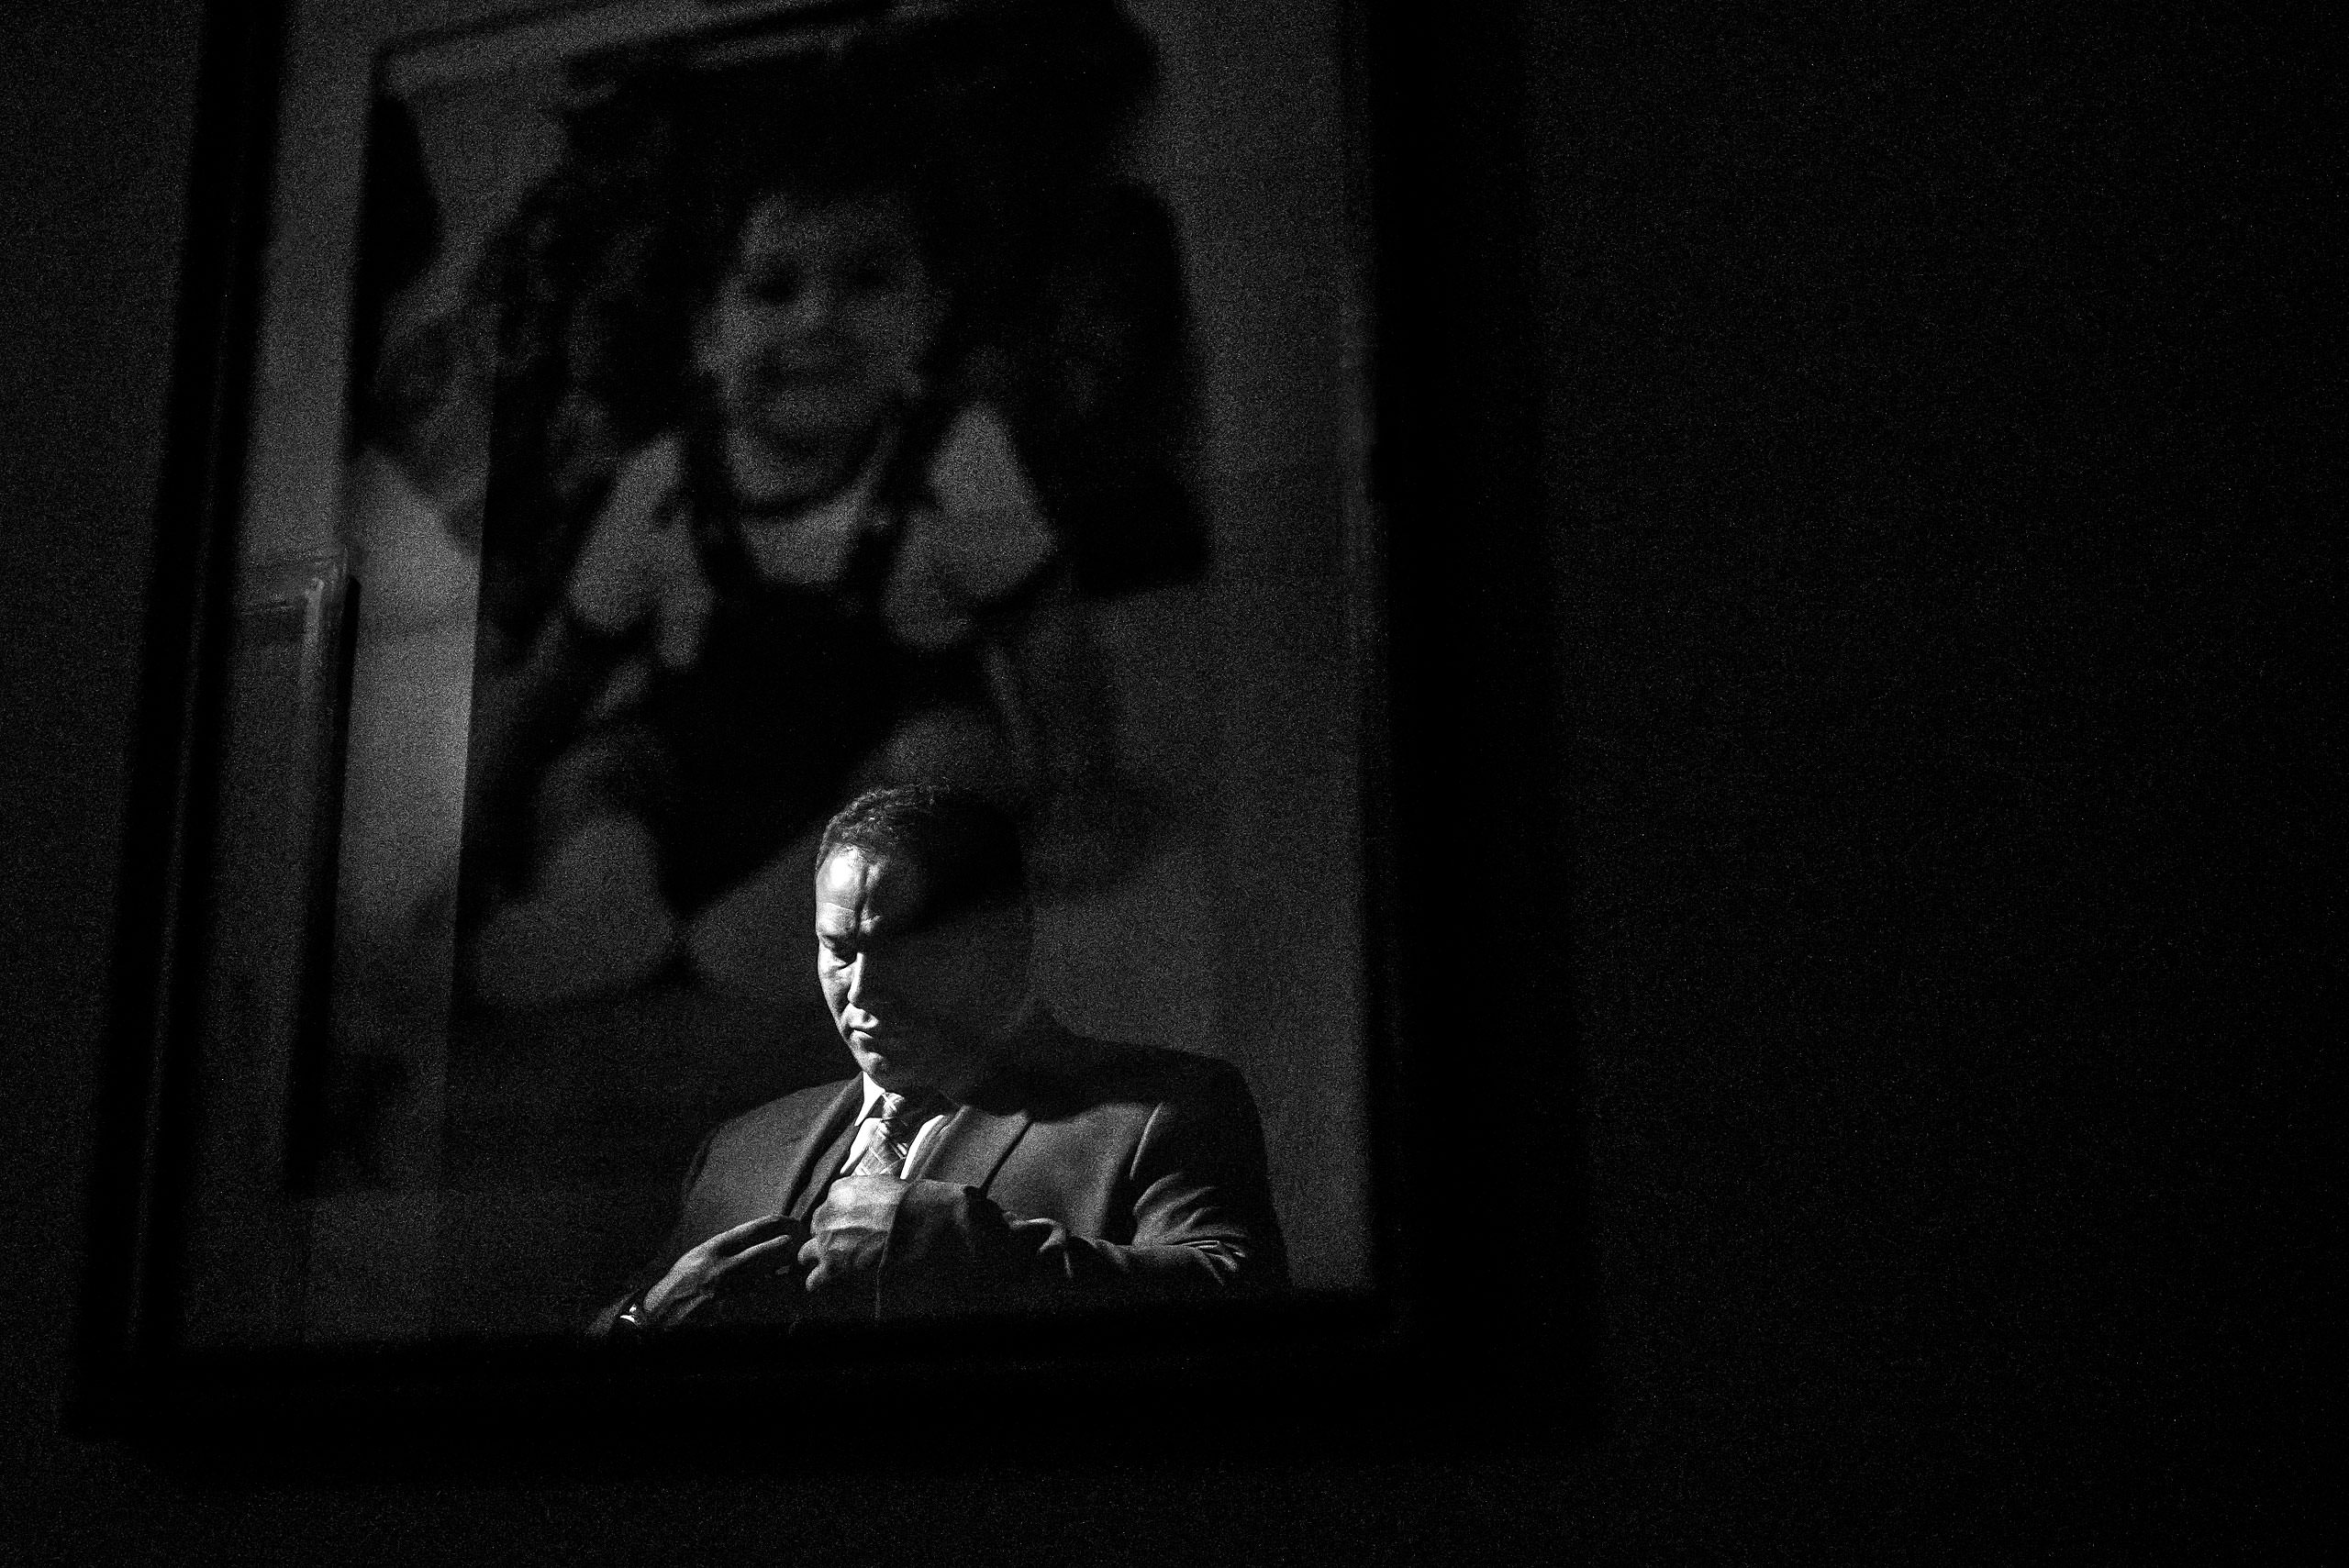 a reflection of a groom in a photo hanging on a wall by Edmonton wedding photographer sean leblanc